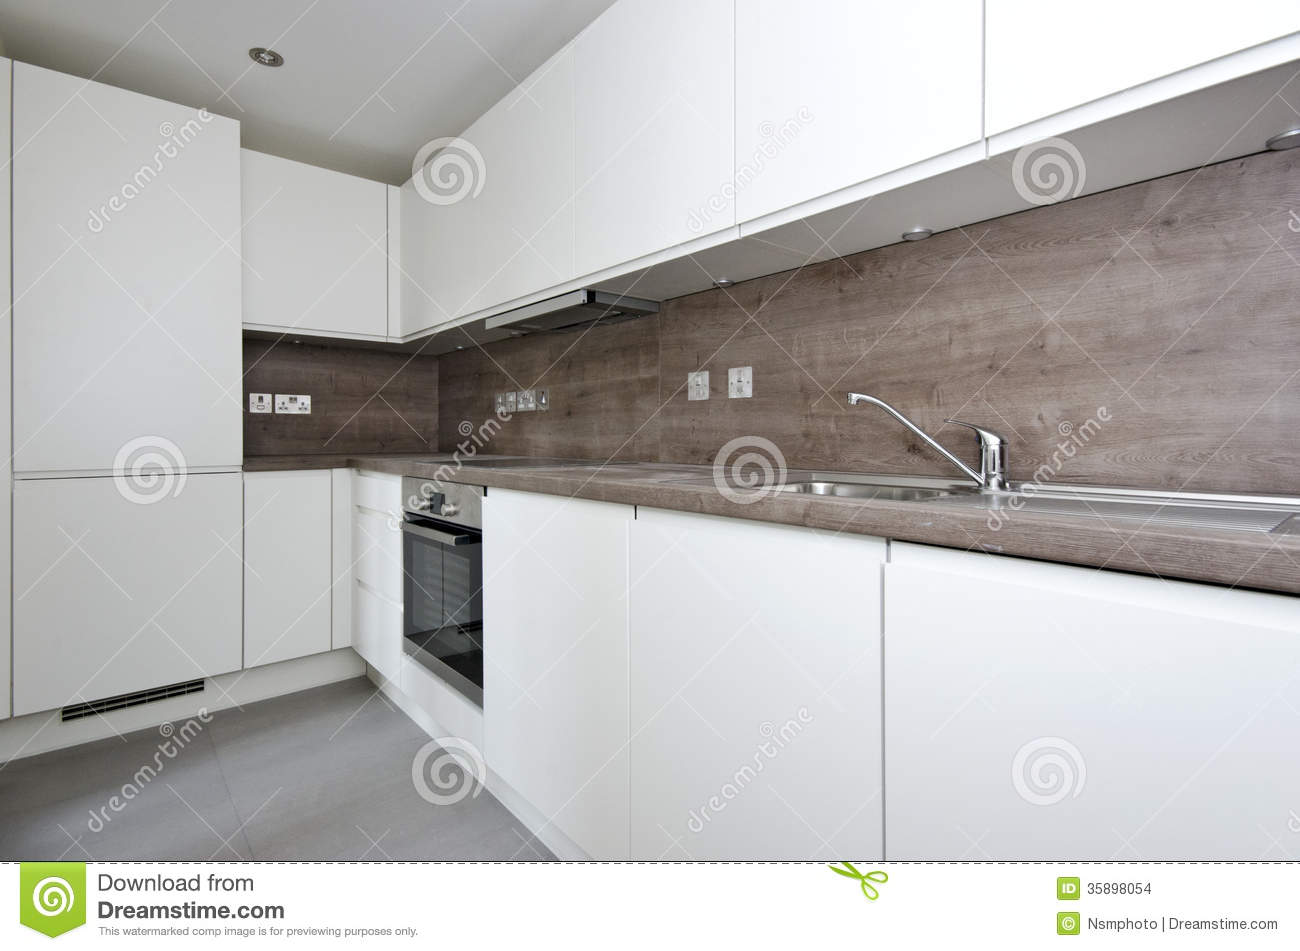 Natuursteen Keuken Tegels : Kitchen with Natural Stone